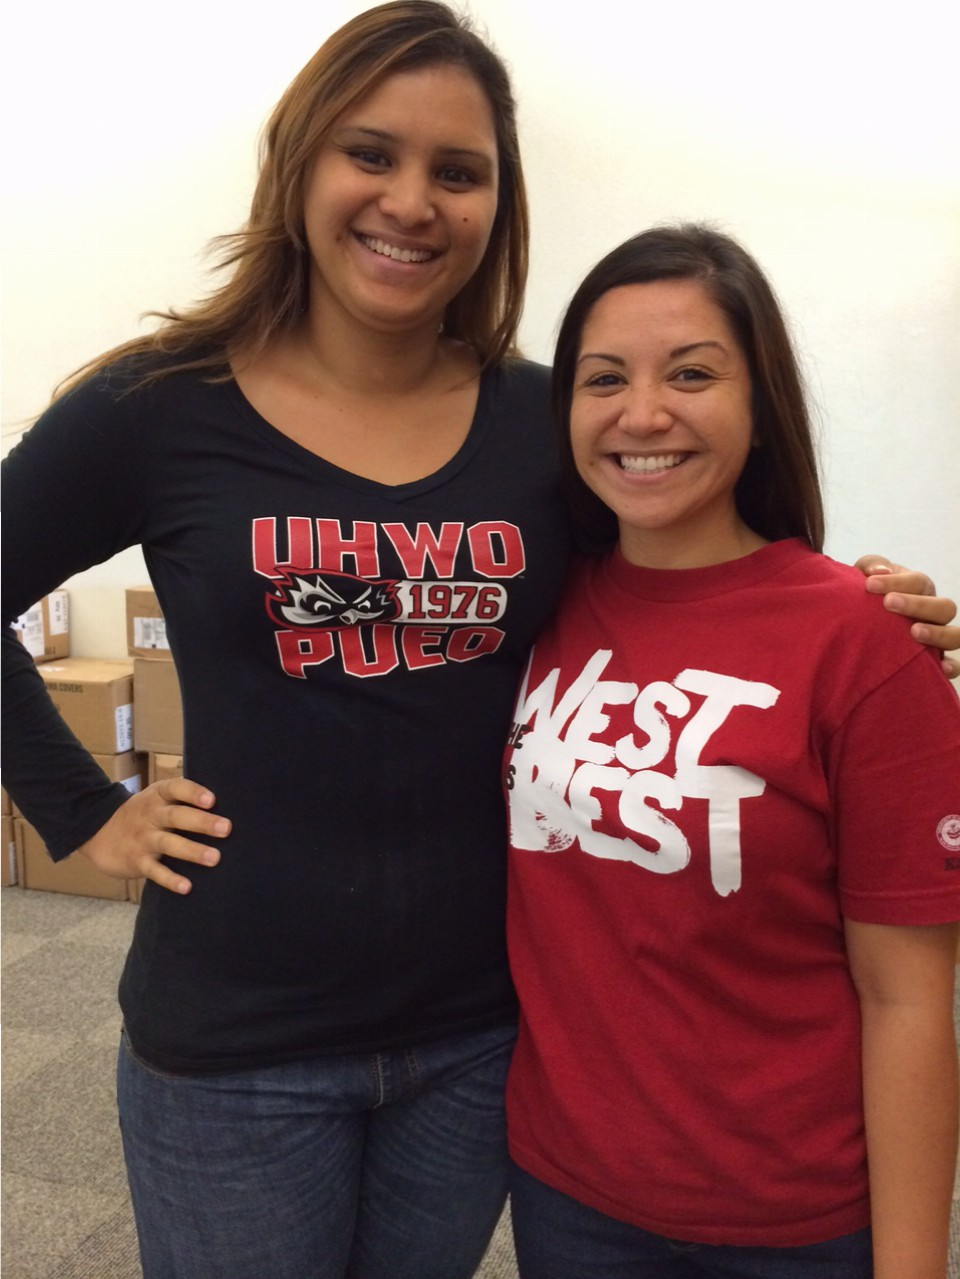 Staff posing wearing UHWO apparel